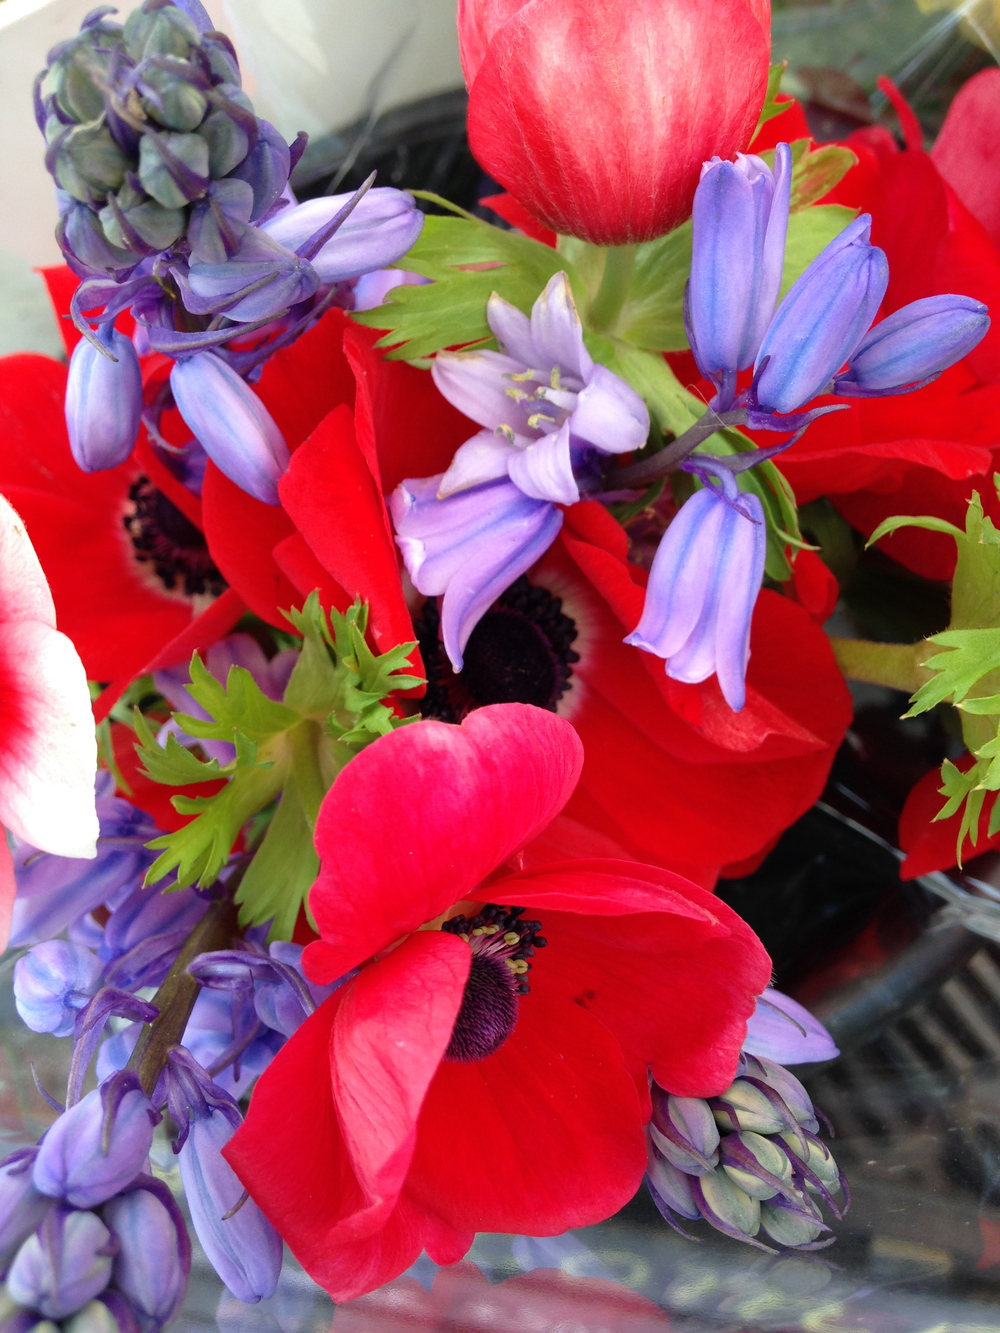 Anemones from Butternut Gardens enjoying the company of Scilla.